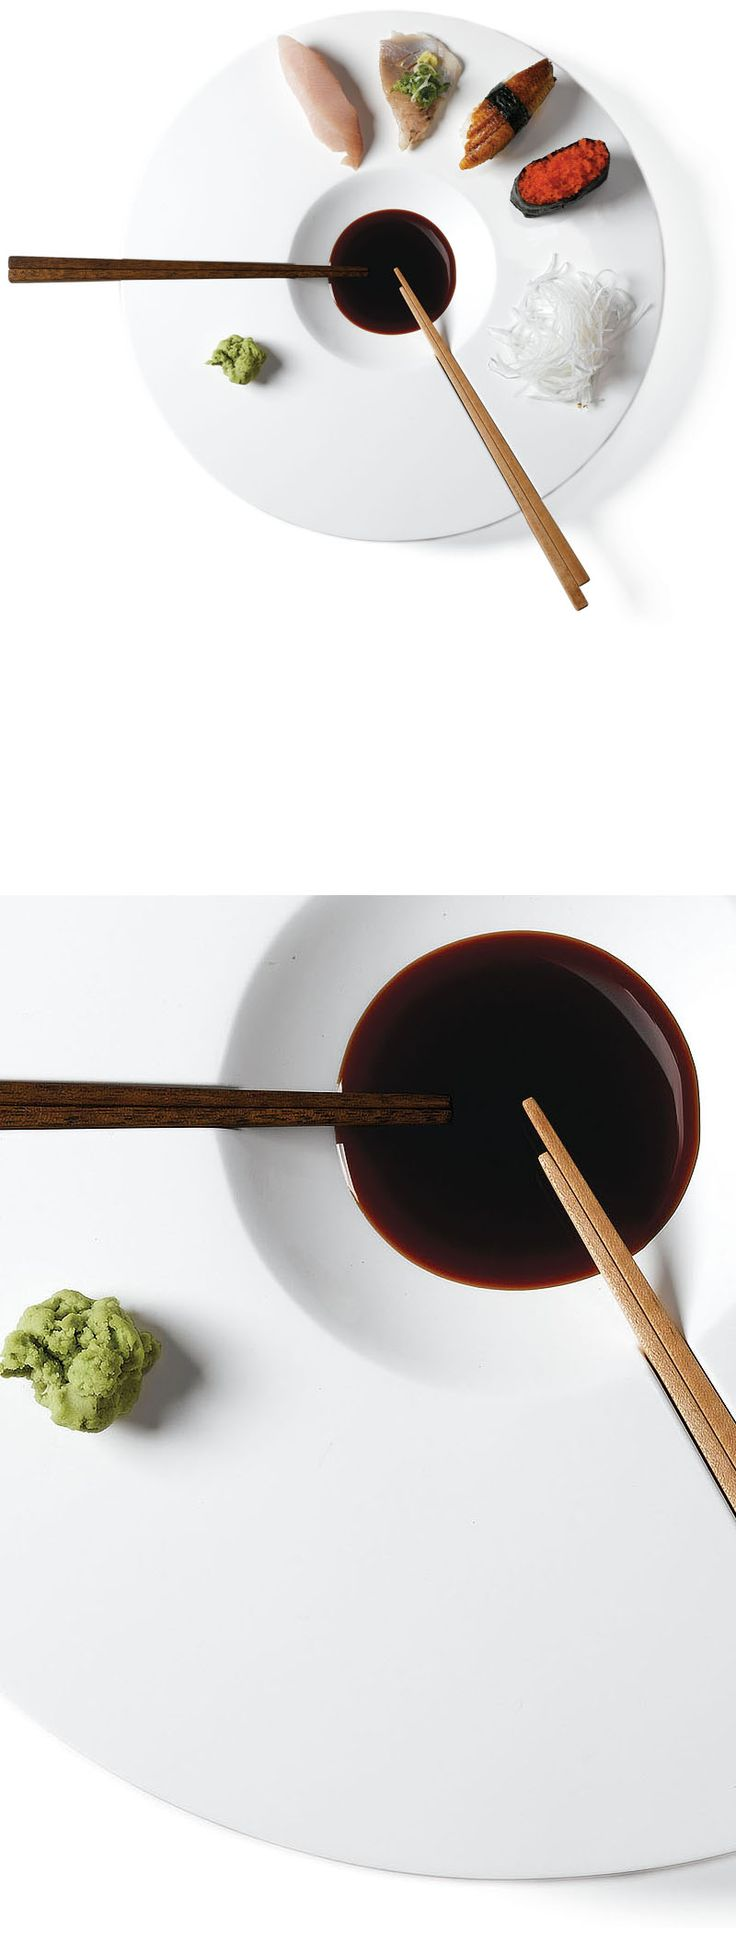 Mint Design: Sushi-Time Sushi Plate